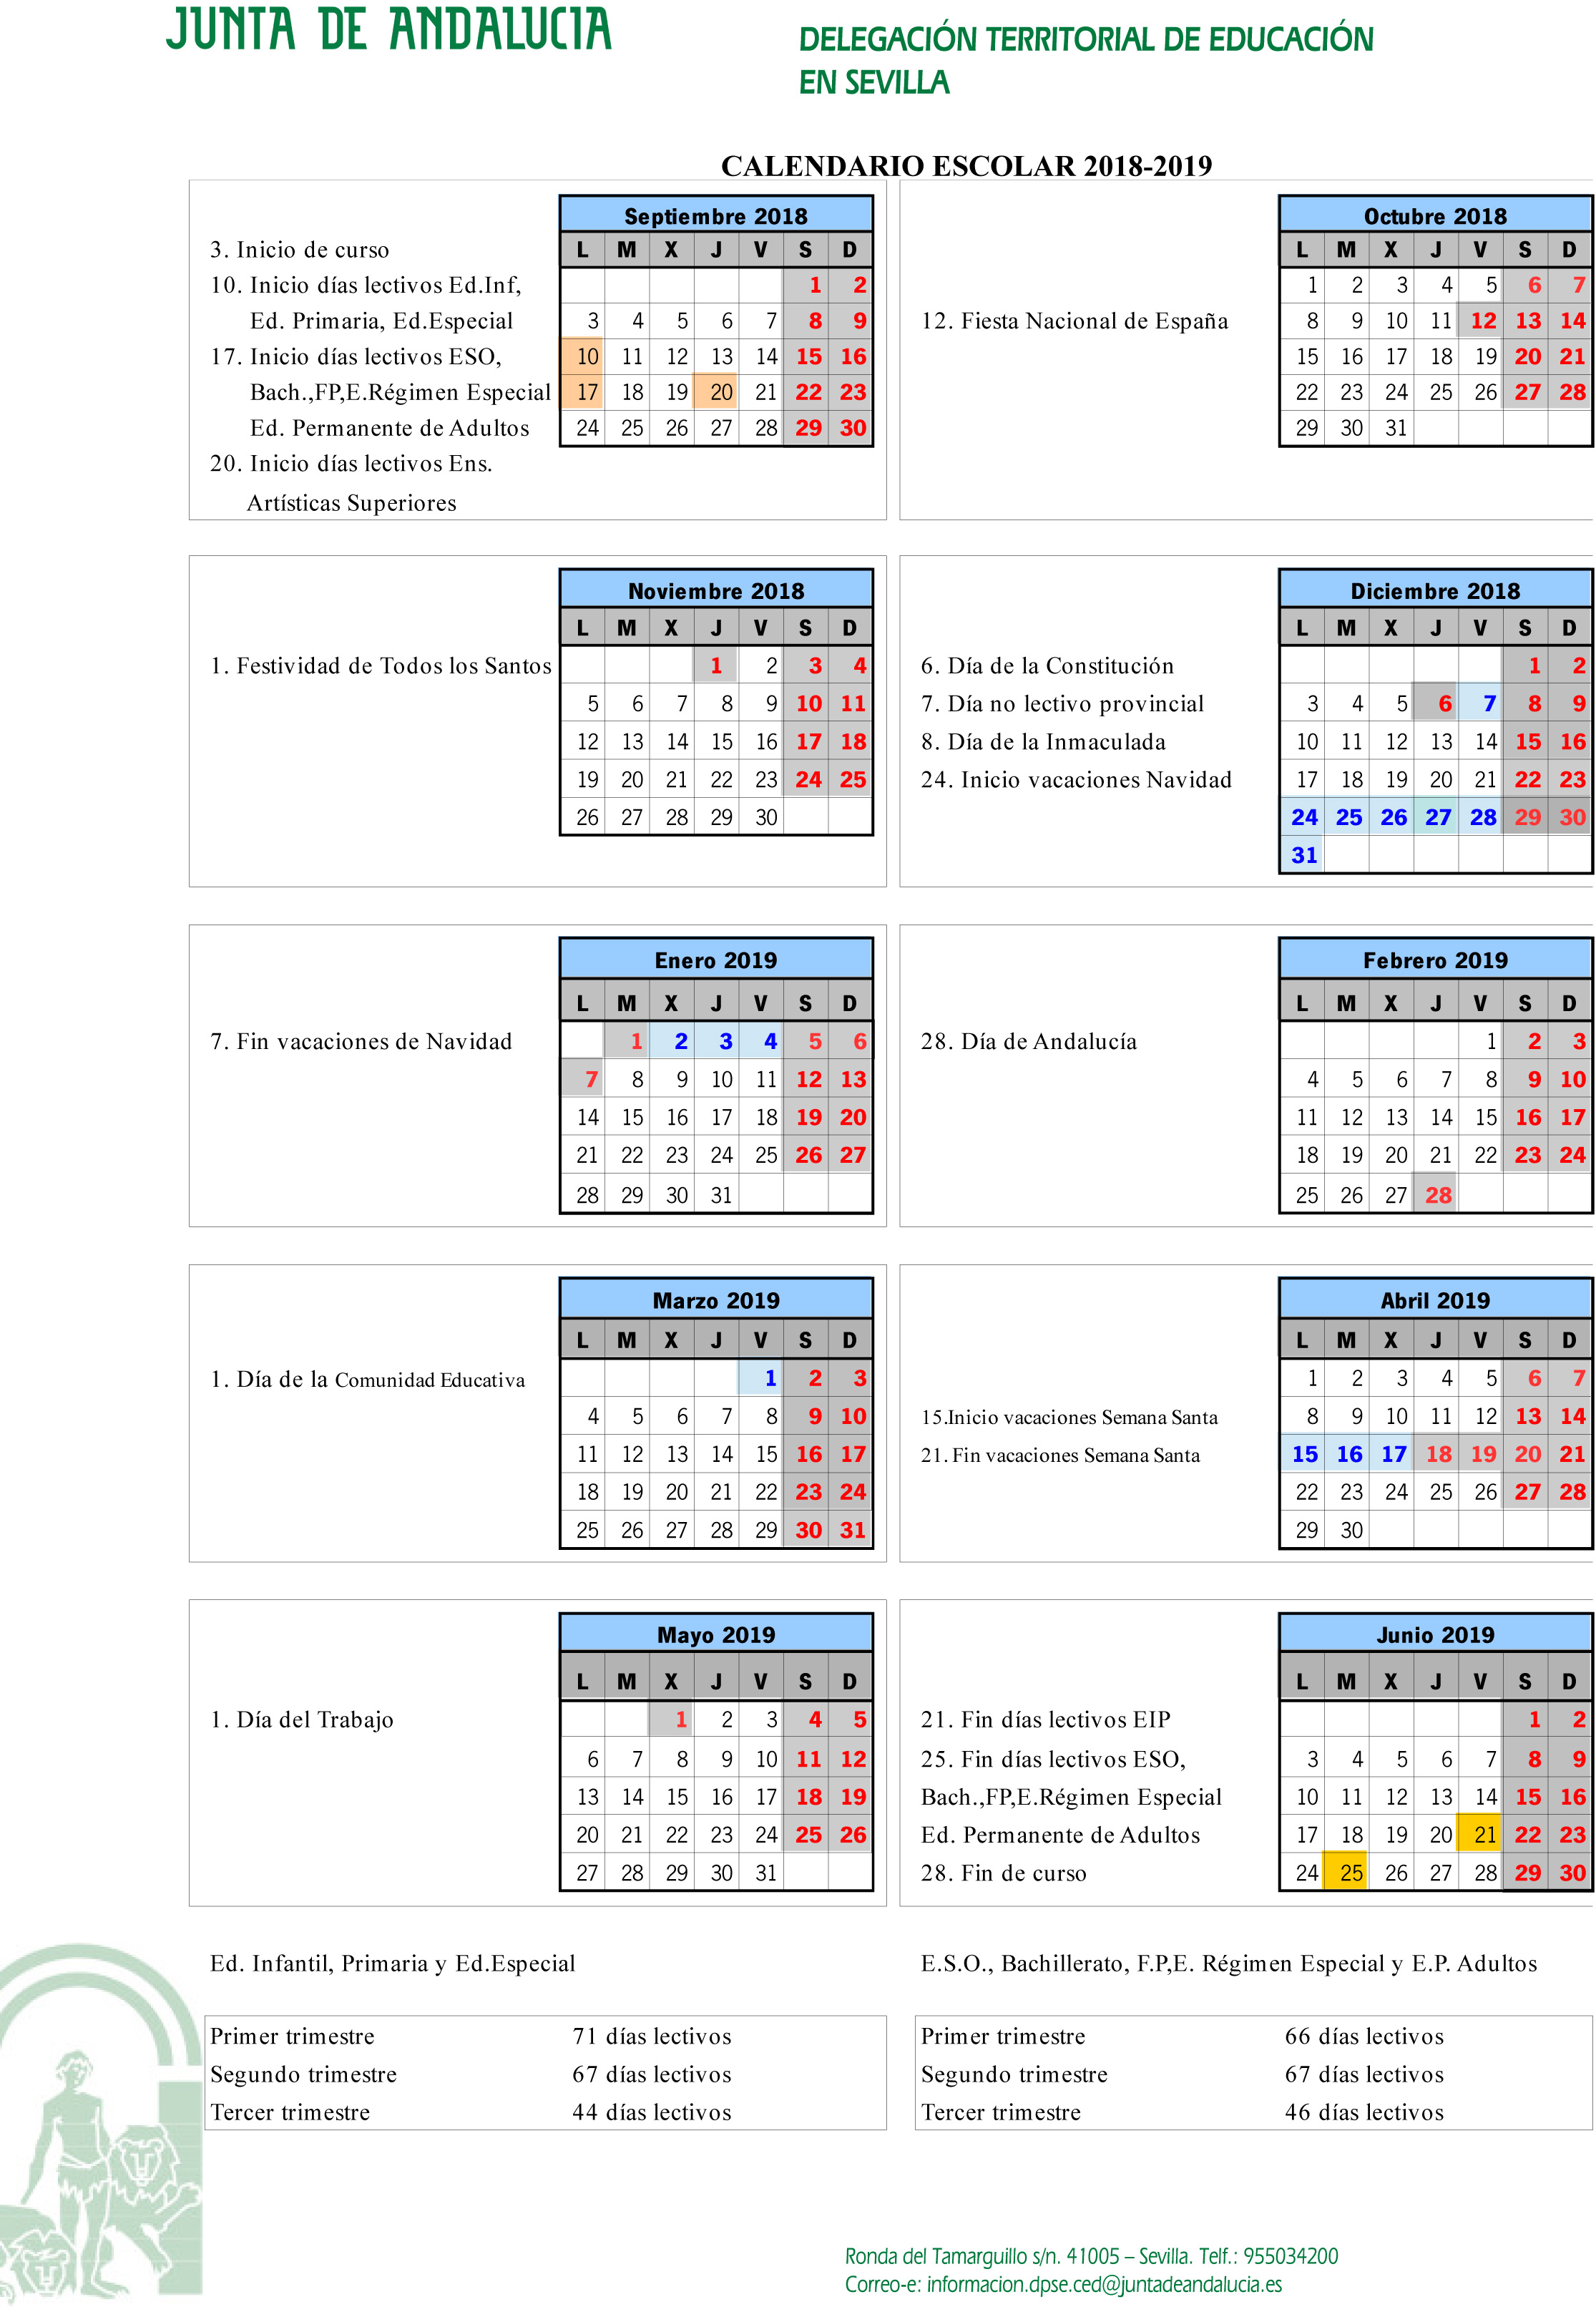 Calendario Fin 2020.Index Of Wp Content Uploads Calendario Escolar